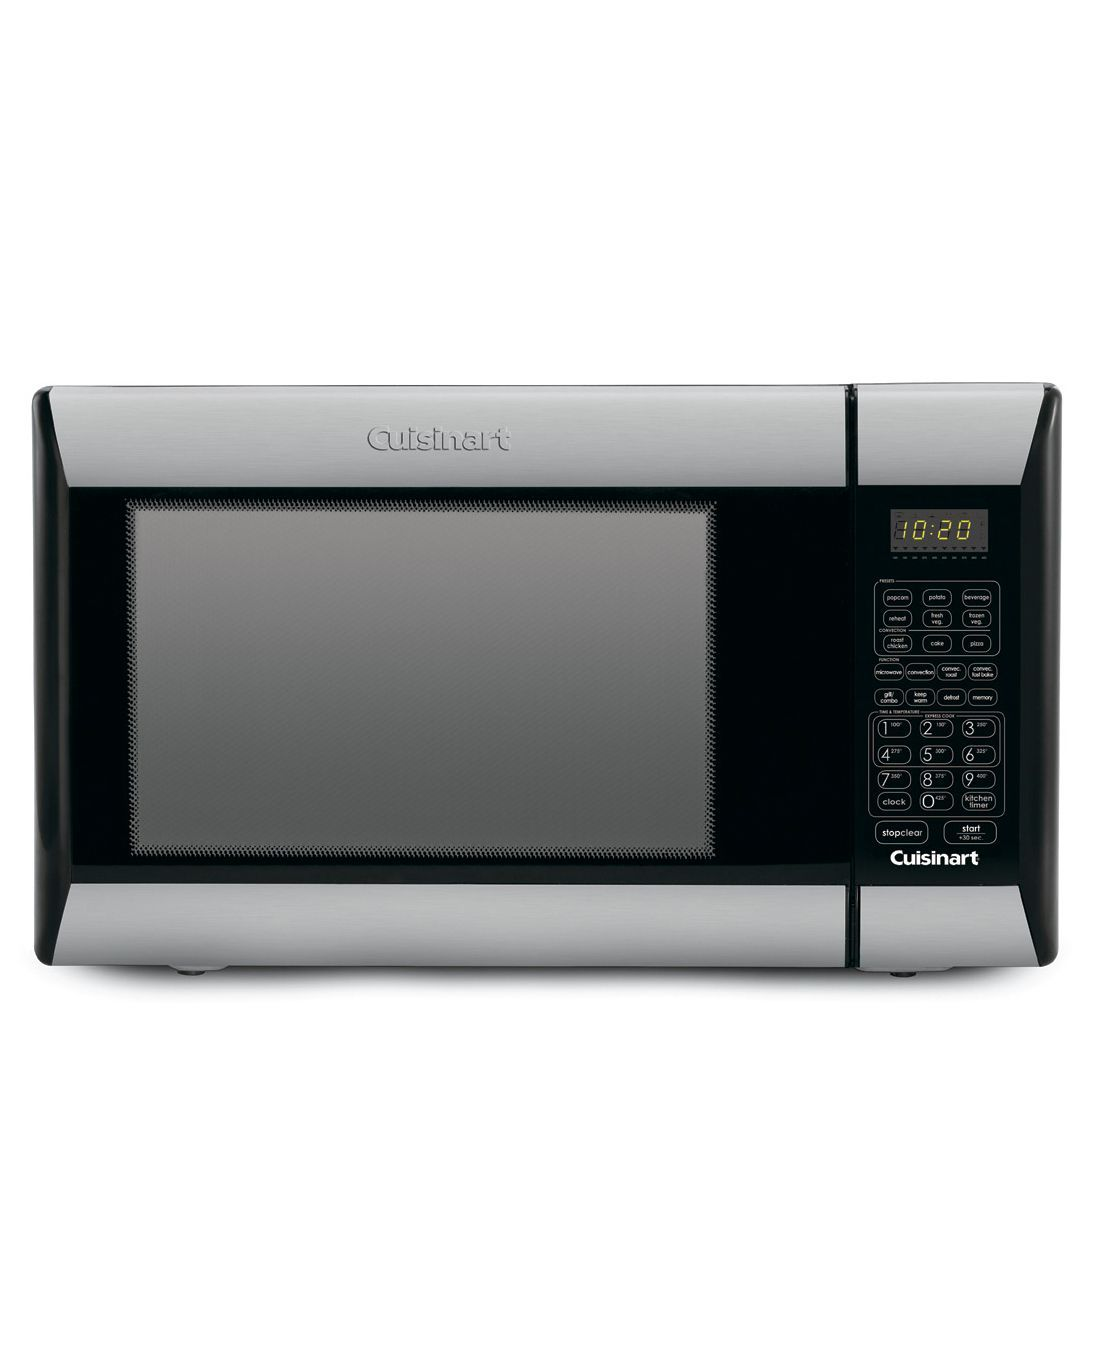 Cuisinart cmw200 microwave oven convection grill